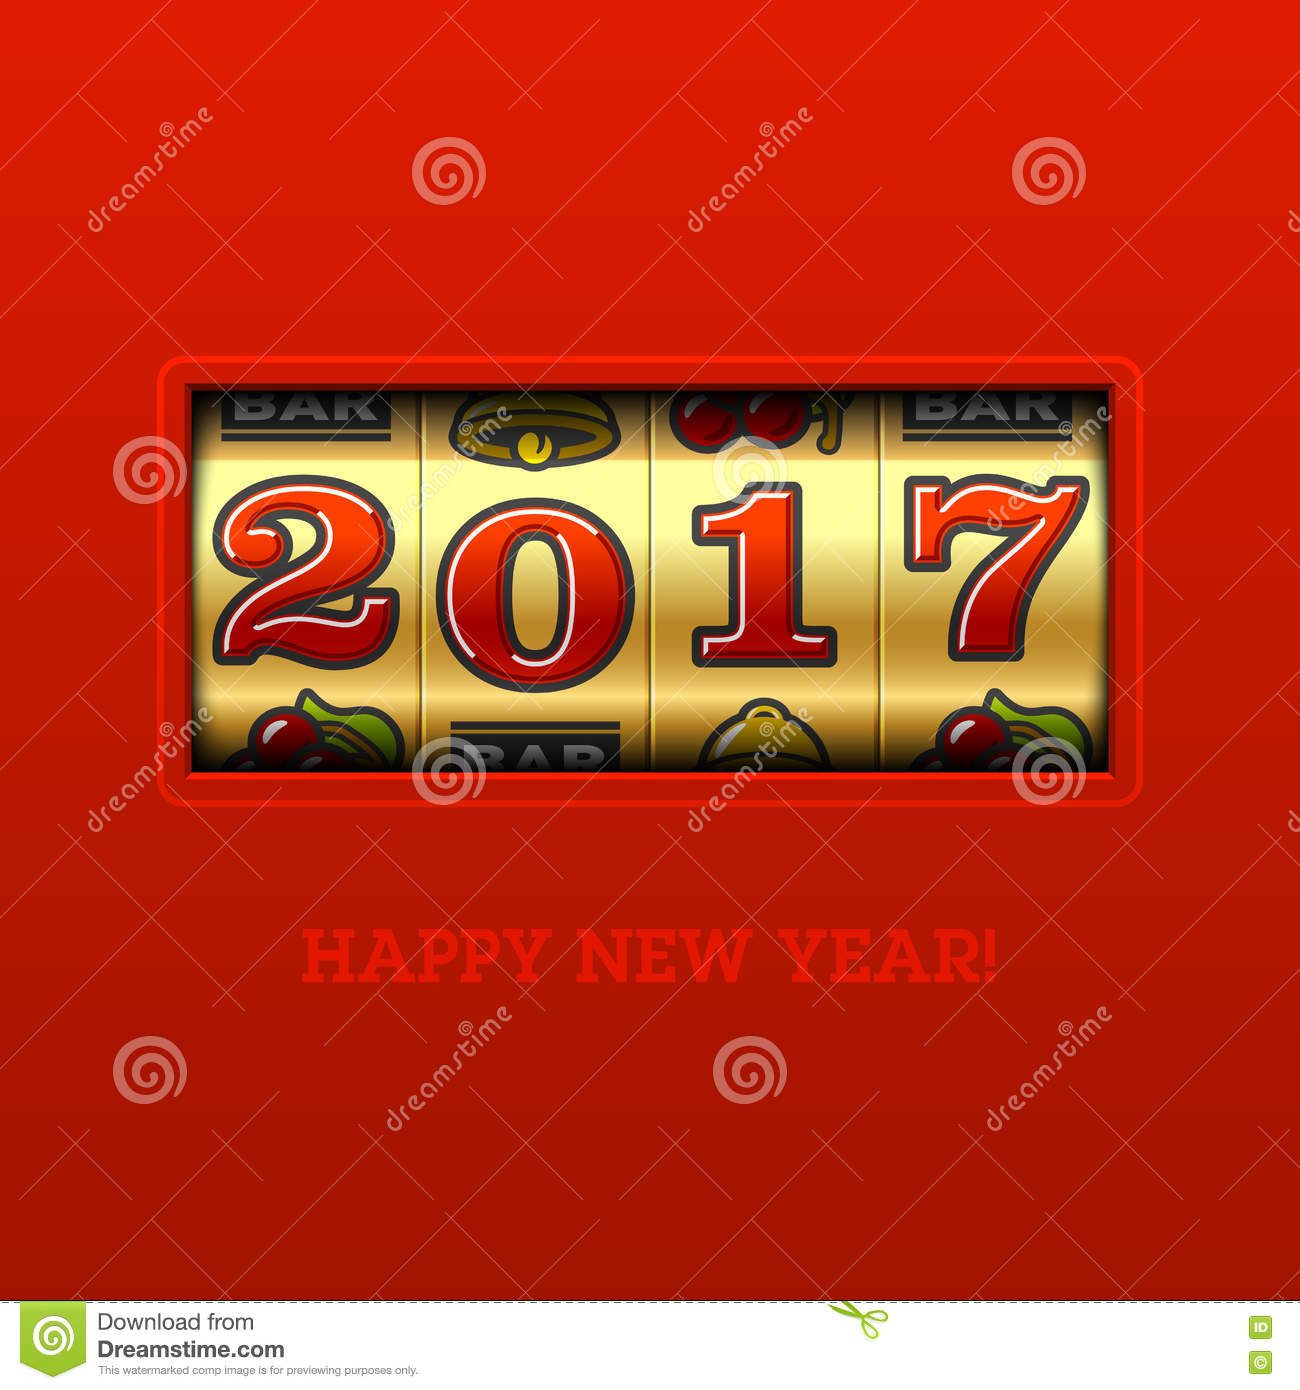 Happy New Year 2017 Greeting Card Stock IllustrationImage79421680